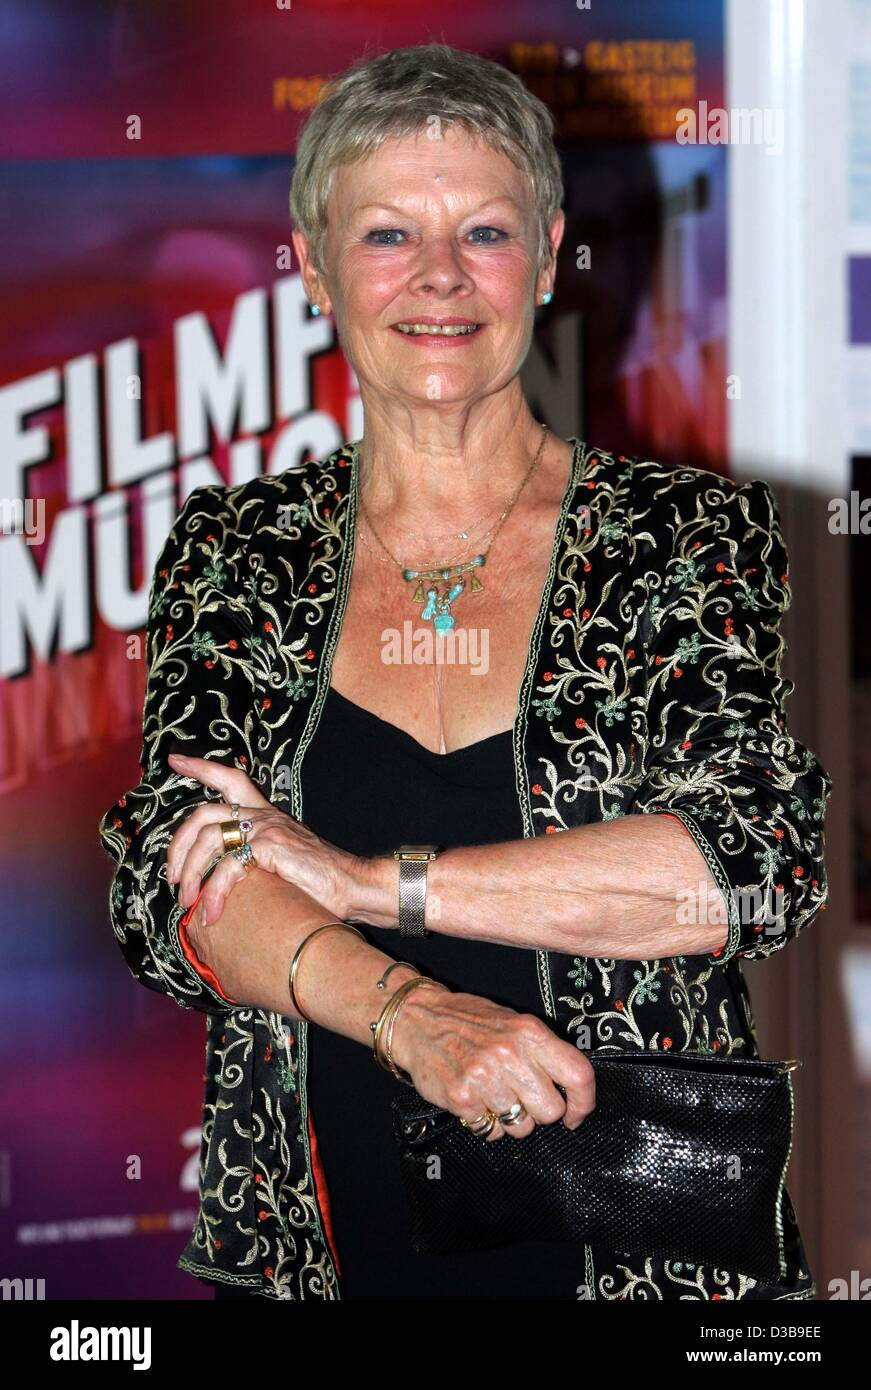 (dpa) - The British actress Judi Dench is pictured during a gala screening of her movie 'Ladies in Lavender' in Stock Photo